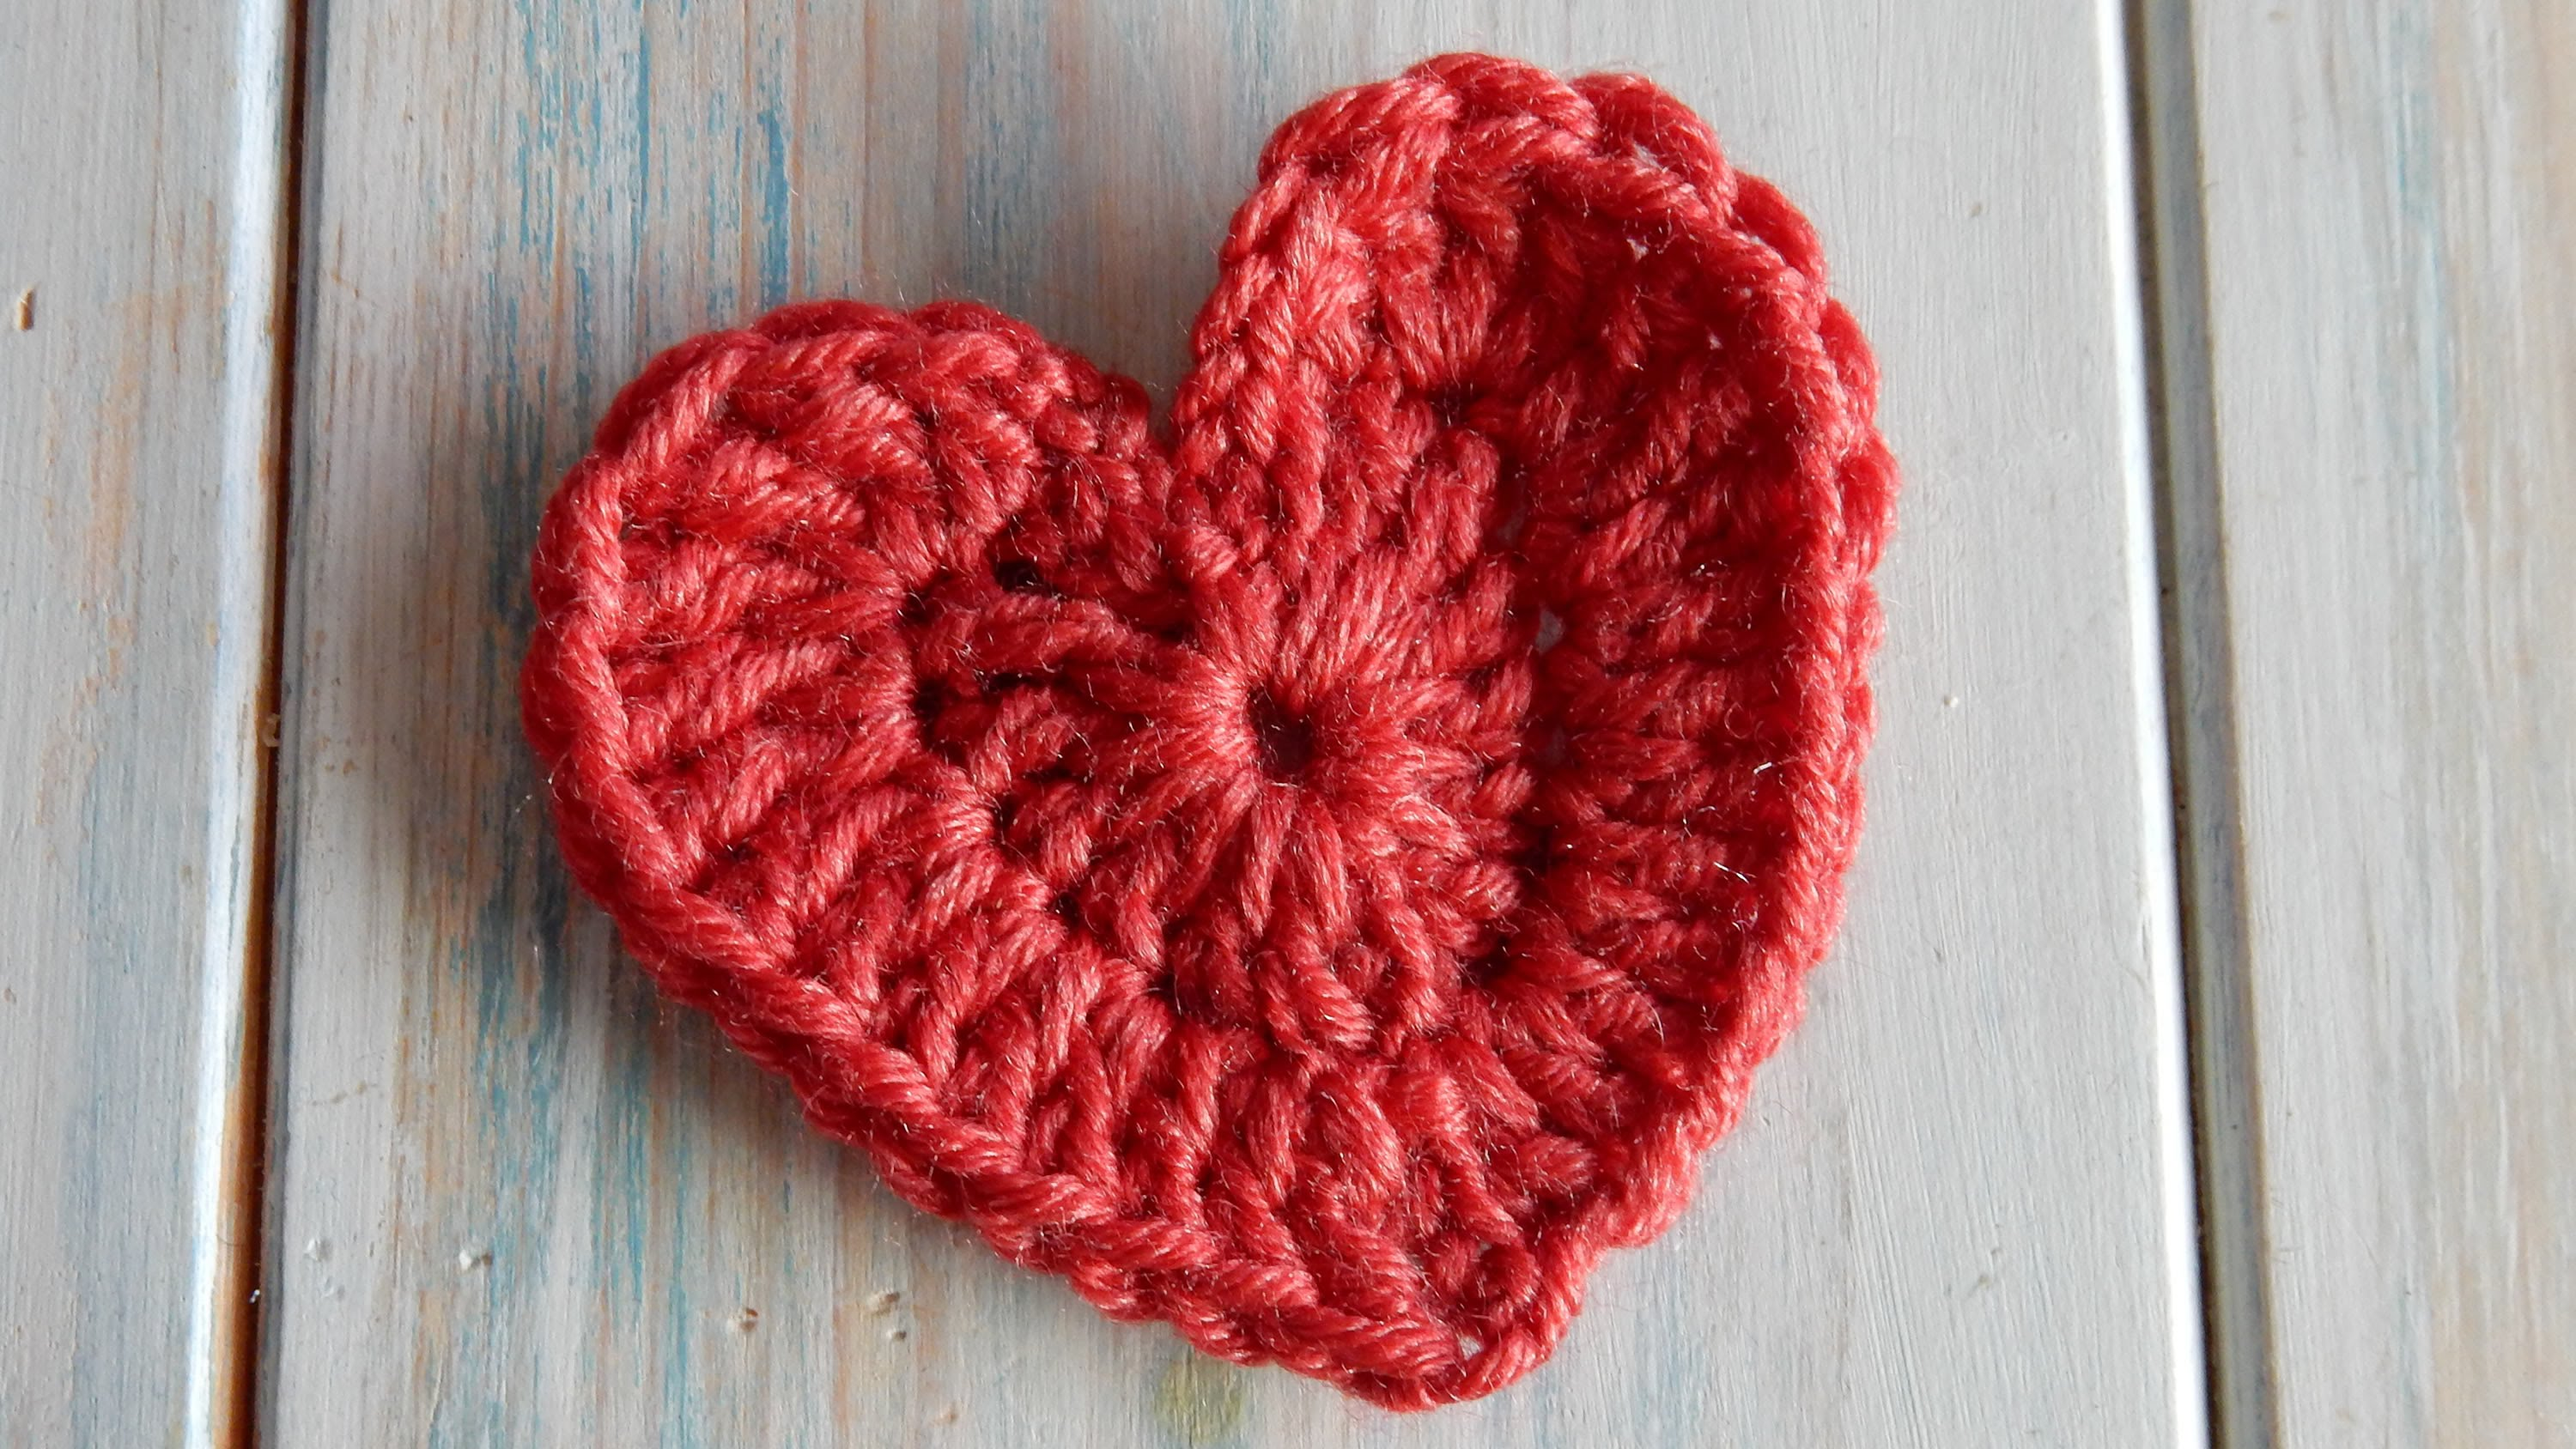 crochet heart how to crochet a heart - youtube ndojfku